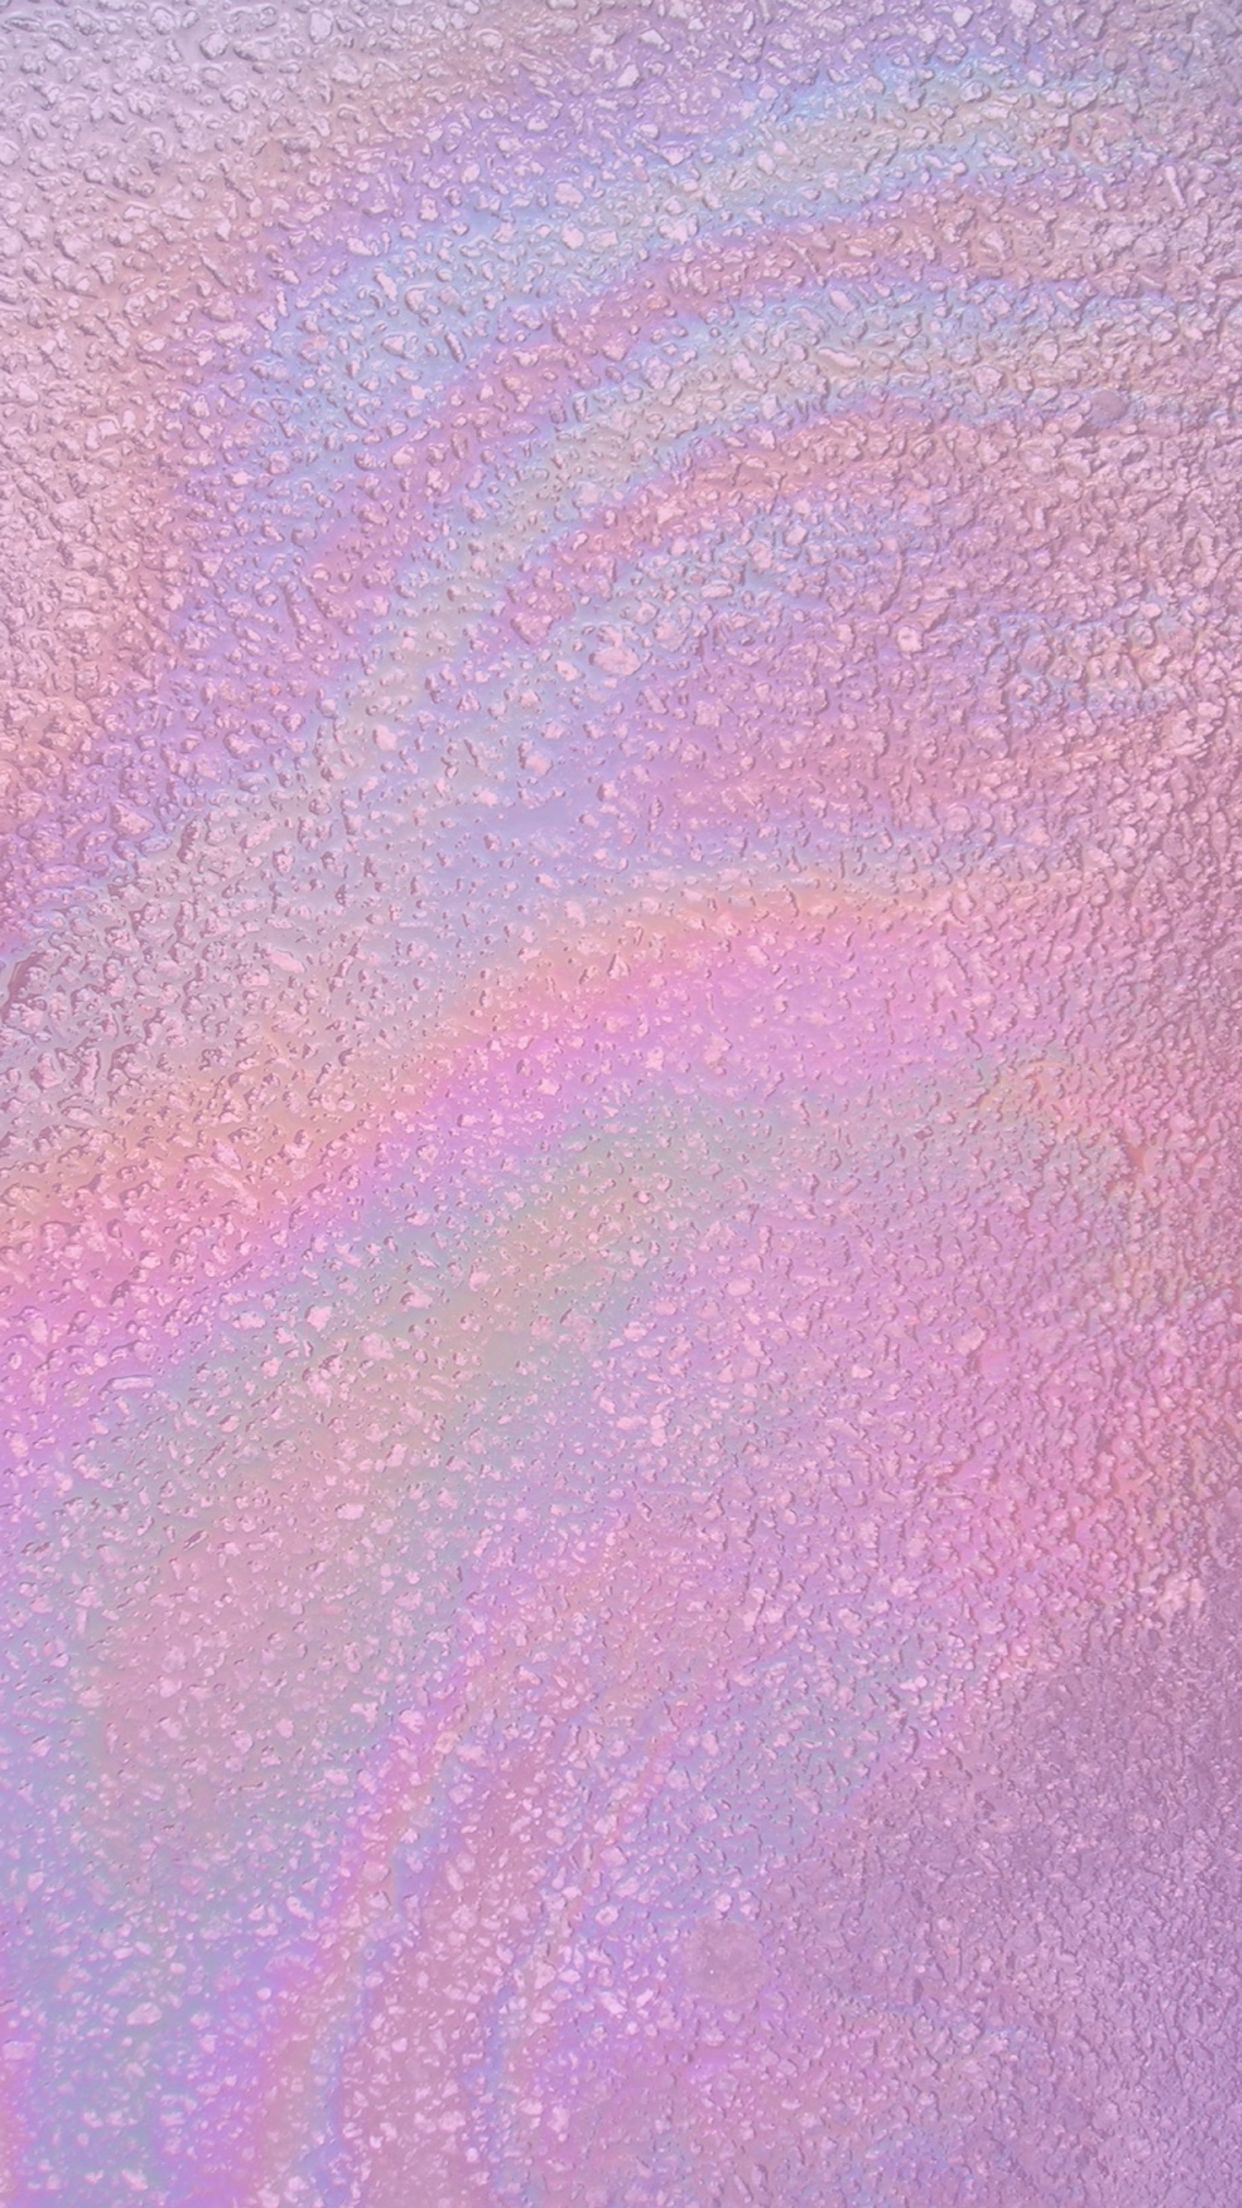 Wallpaper iphone pastel hd - Iridescent Holographic Wallpaper Iphone Android Hd Background Pink Purple